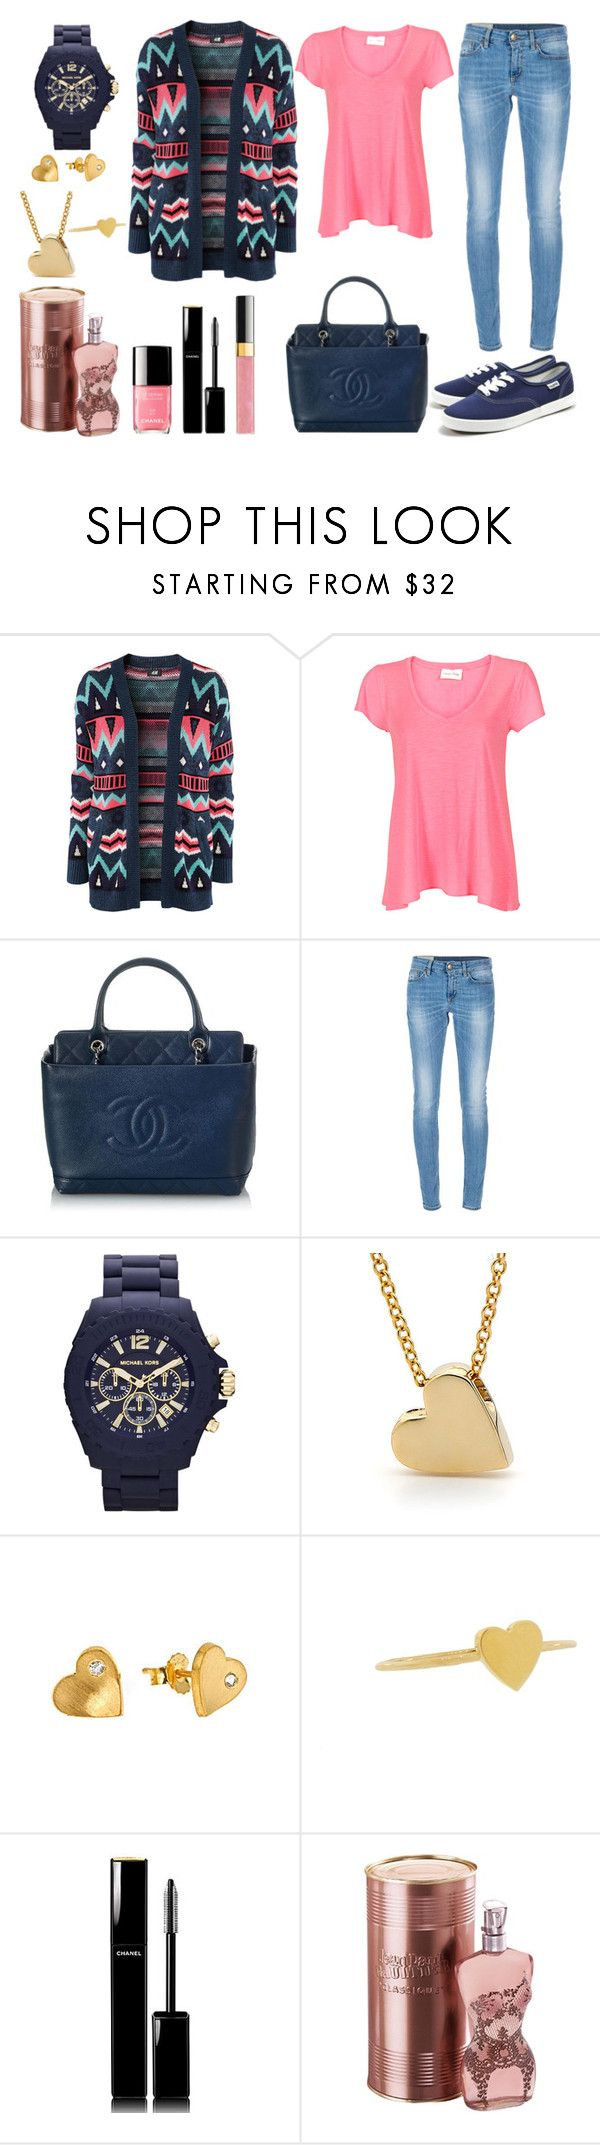 """""""Tenue 57"""" by yasmine-ines ❤ liked on Polyvore featuring H&M, American Vintage, Chanel, Dondup, Michael Kors, Pineapple Seed, Jennifer Meyer Jewelry and Jean-Paul Gaultier"""